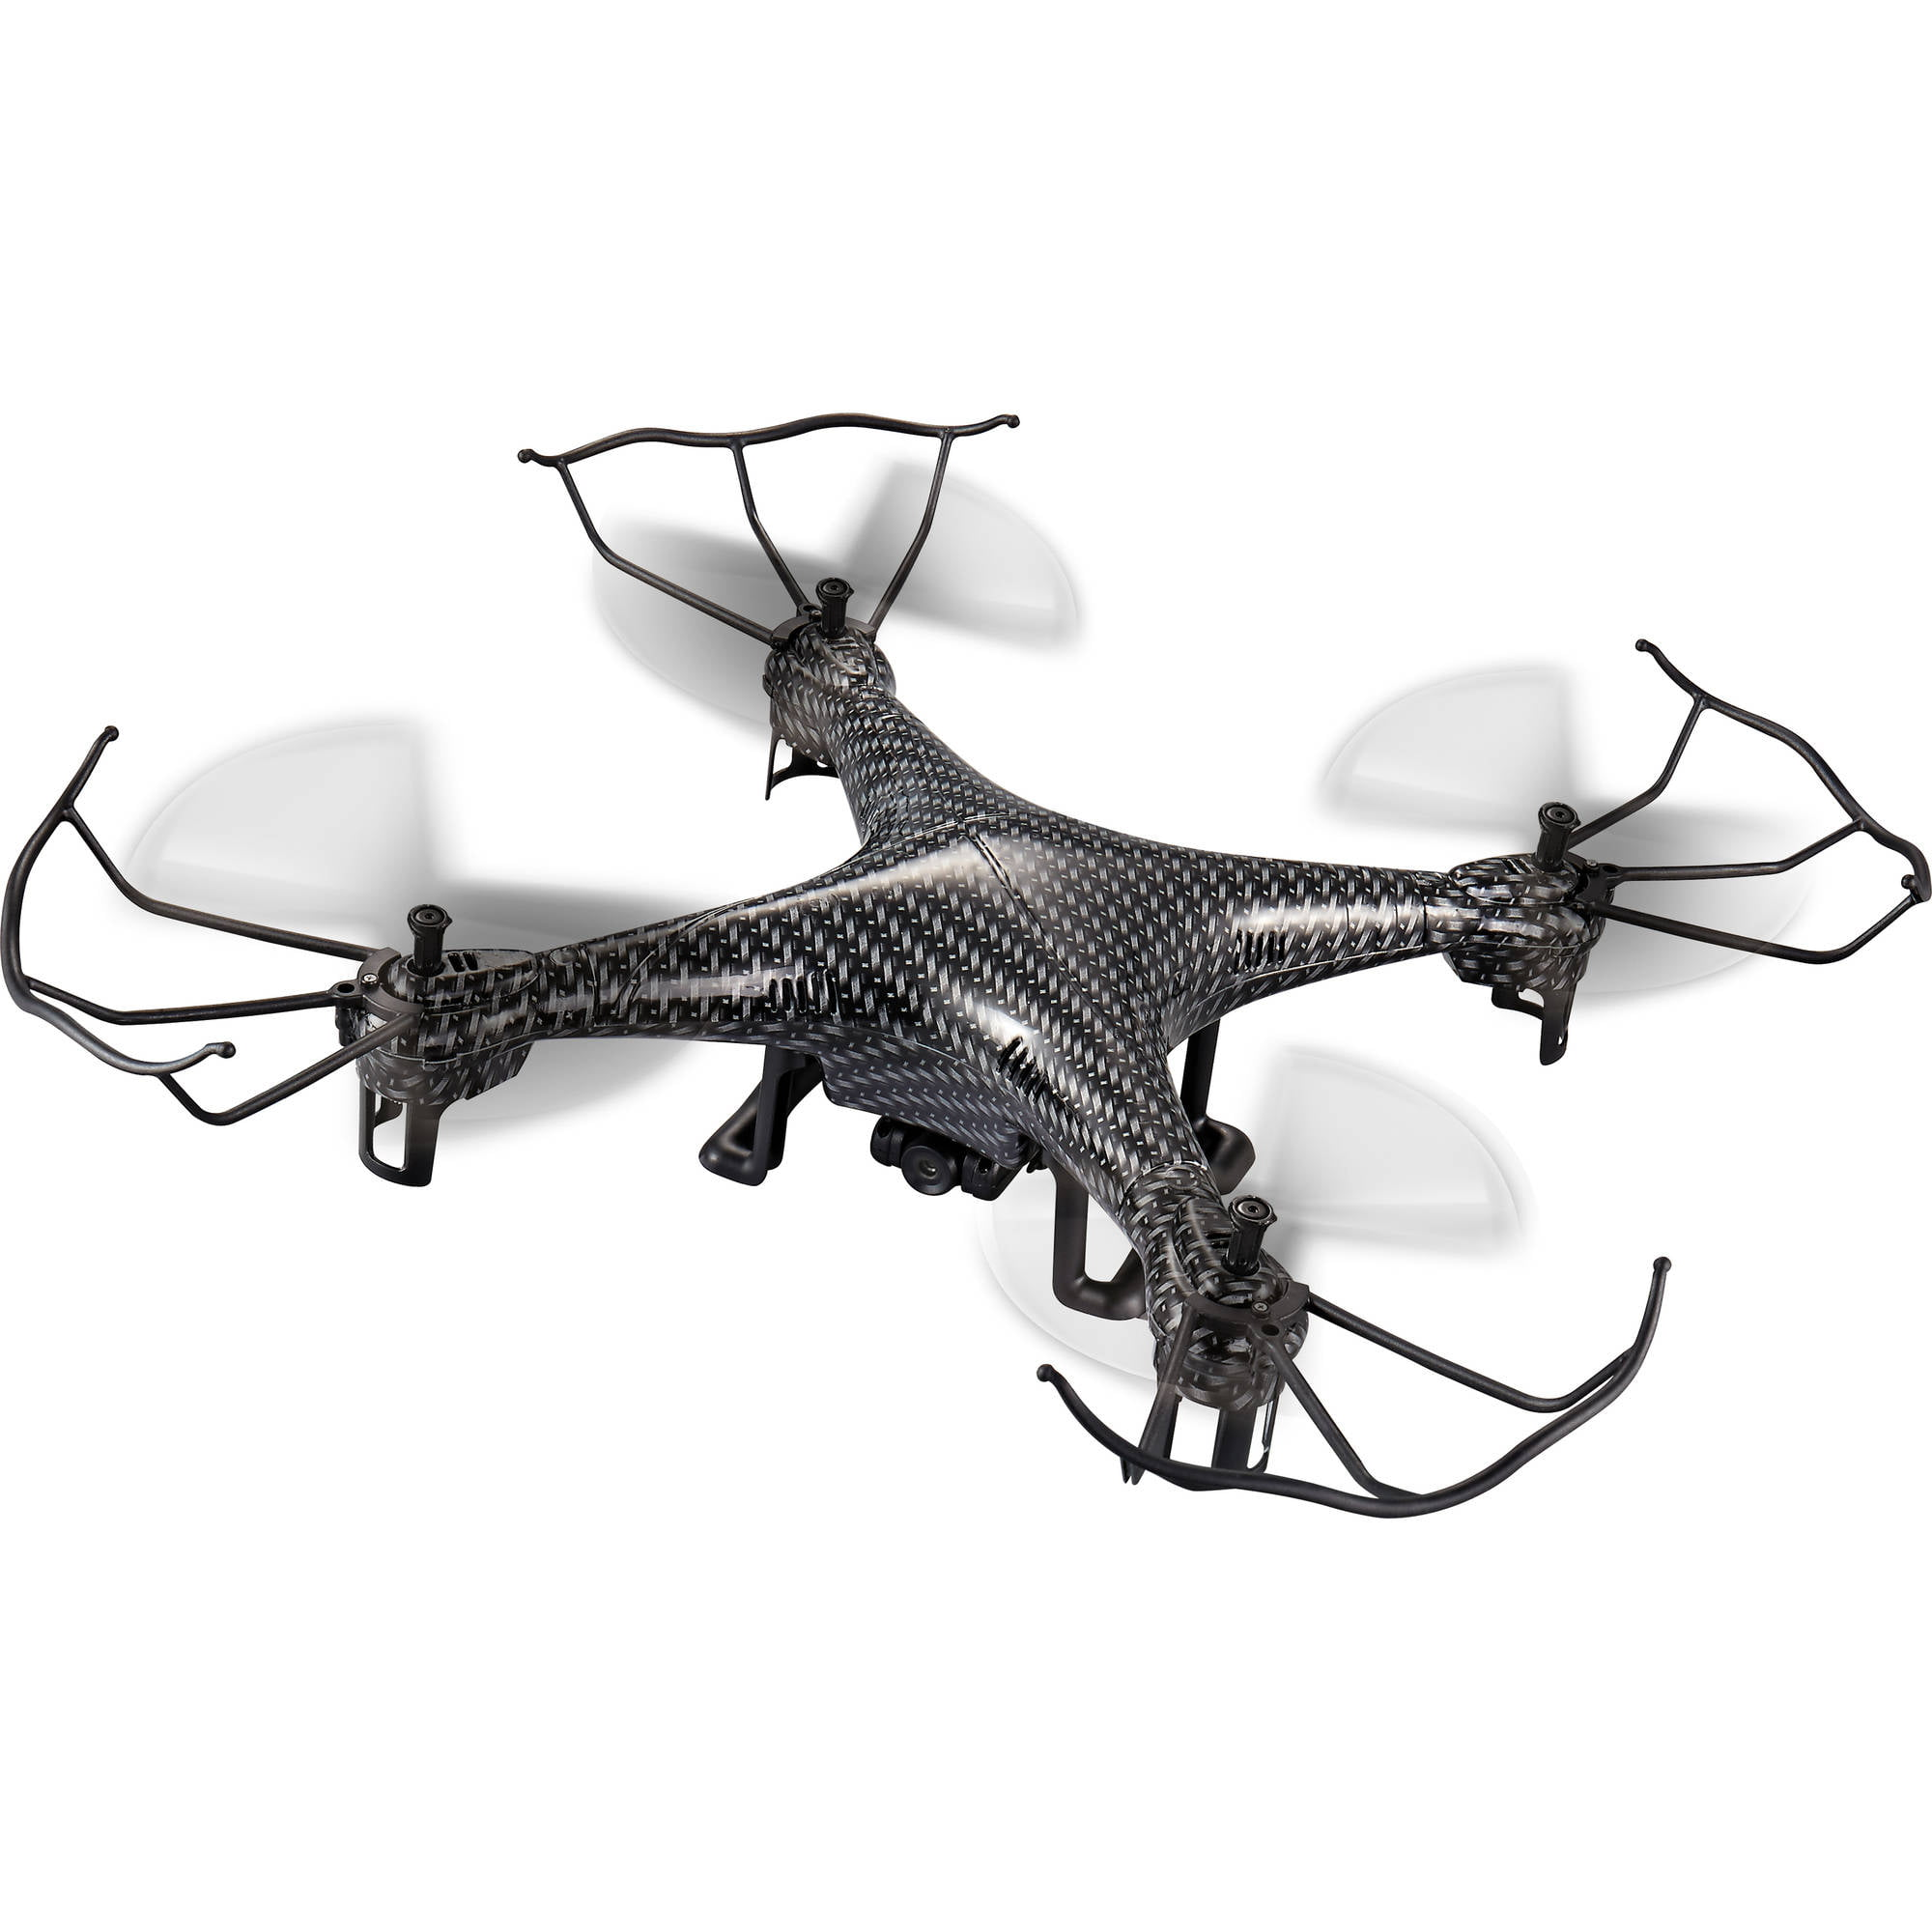 Braha X15 3D Virtual Reality Drone with VR Goggles and Bonus Battery Included by